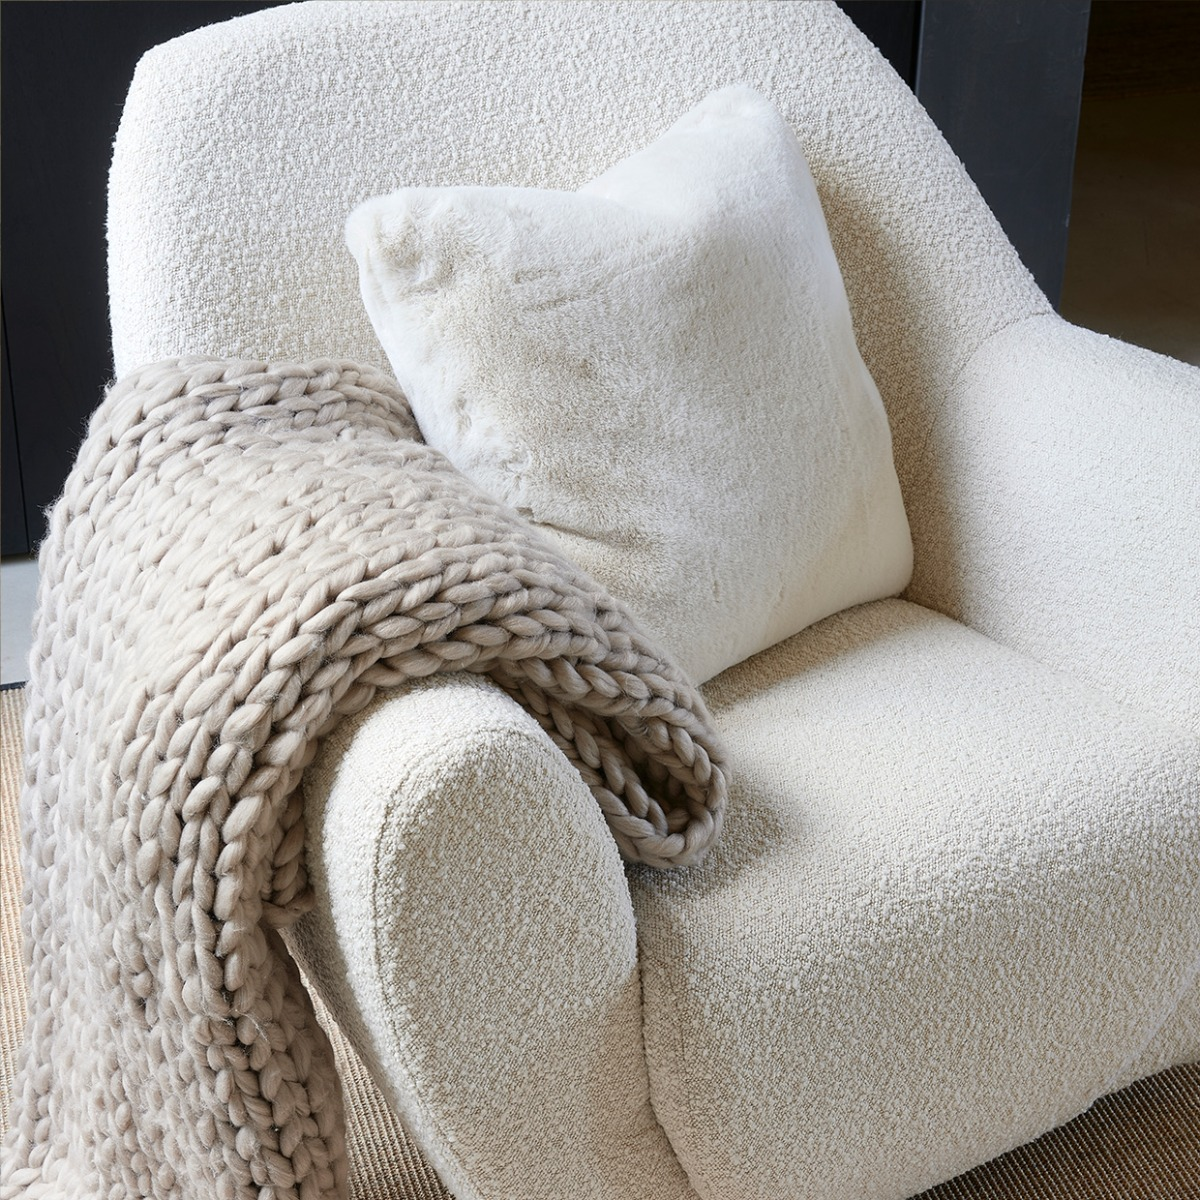 Vintage Glamour Chair with pillow and cloth